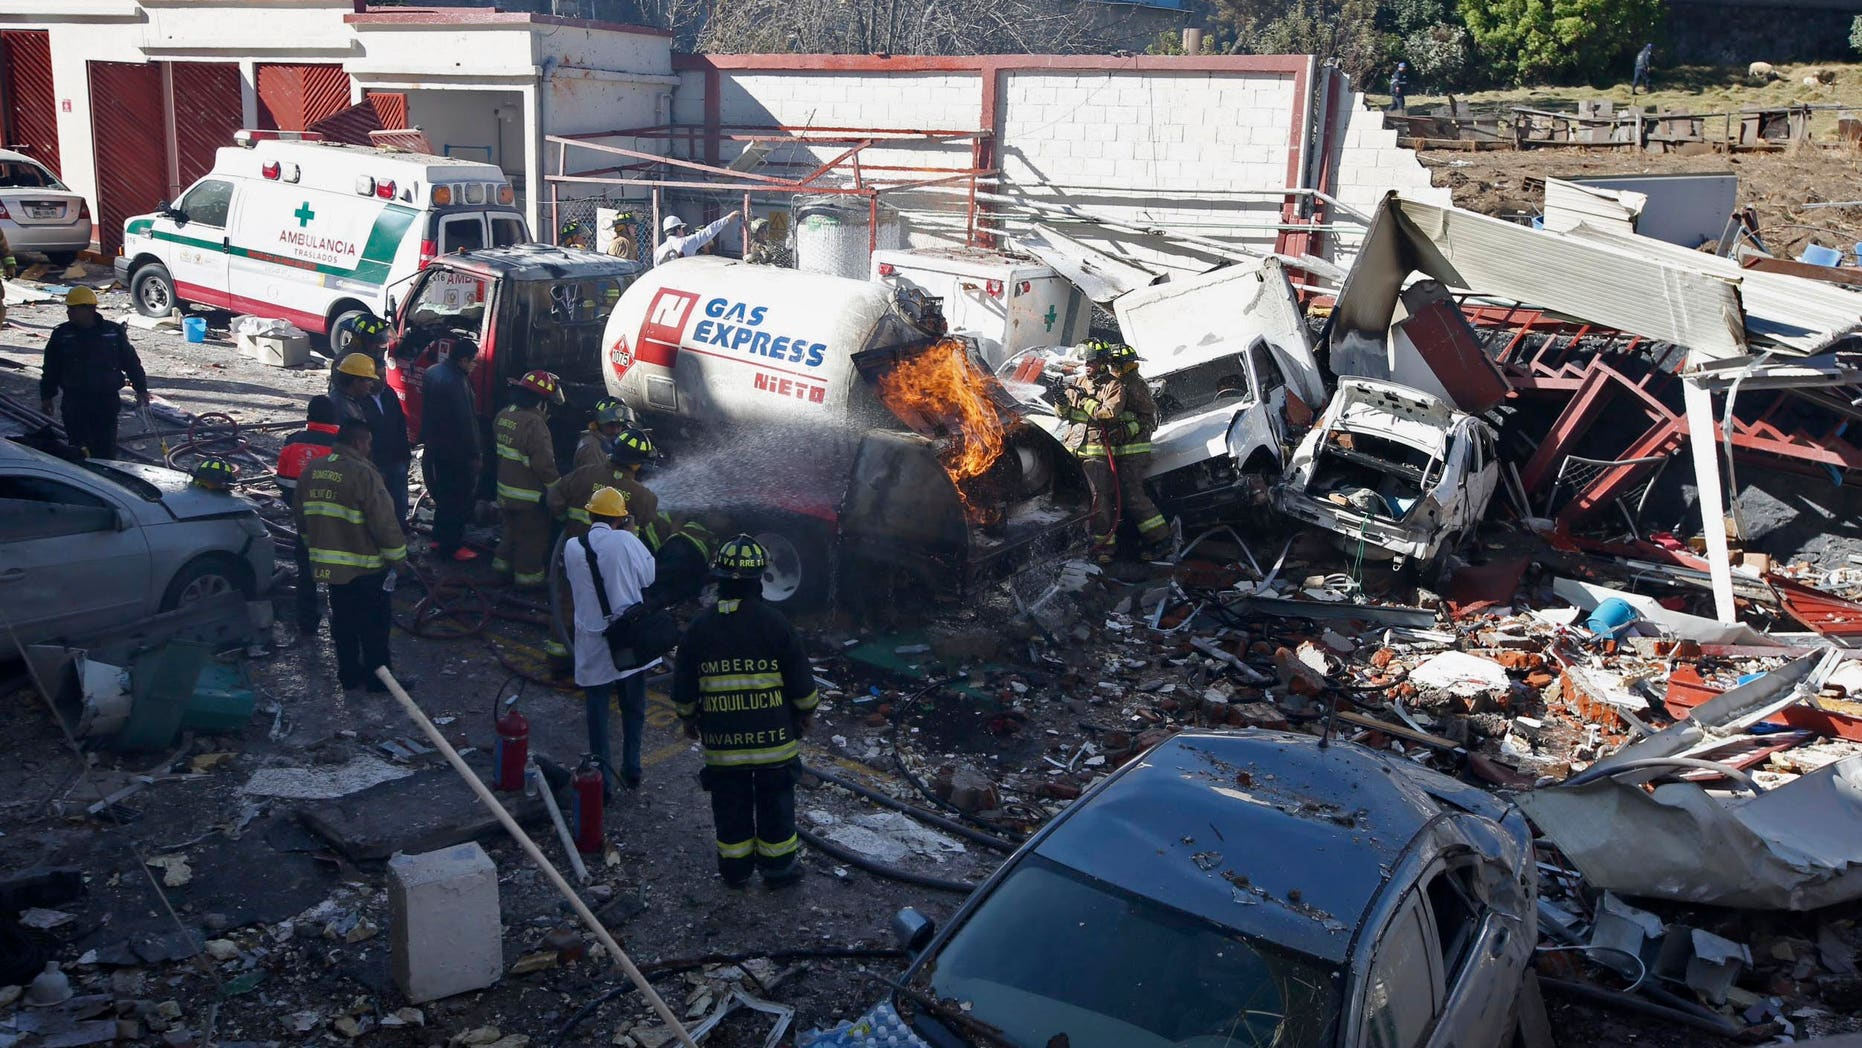 FILE - In this Jan. 29, 2015 file photo, firefighters spray water on a gas truck that caused an explosion and killed five at a maternity and children's hospital in Cuajimalpa on the outskirts of Mexico City. Mexican officials said Monday, Feb. 16, 2015 that two worn-out bolts on the gas tanker truck caused a leak that resulted in the explosion. Experts said wire and Teflon tape had been improperly used on parts of the truck's valves, and Mexico City chief prosecutor Rodolfo Rios said one of the bolts was the wrong size, and the truck's gas meter had been altered to shortchange customers. (AP Photo, File)